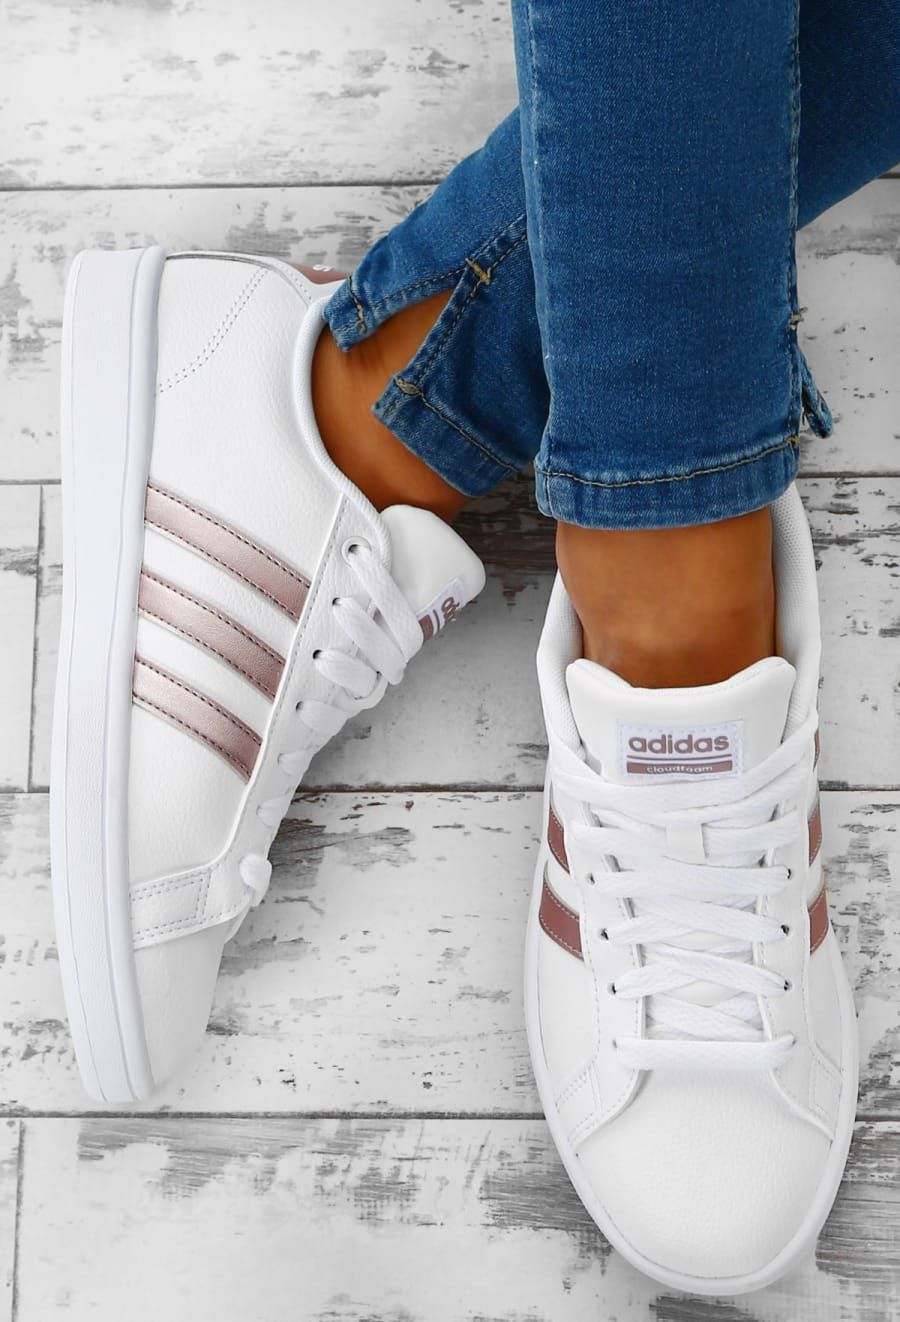 finest selection a4576 3fb2b Adidas Cloudfoam Advantage White and Rose Gold Stripe Trainers   Pink  Boutique